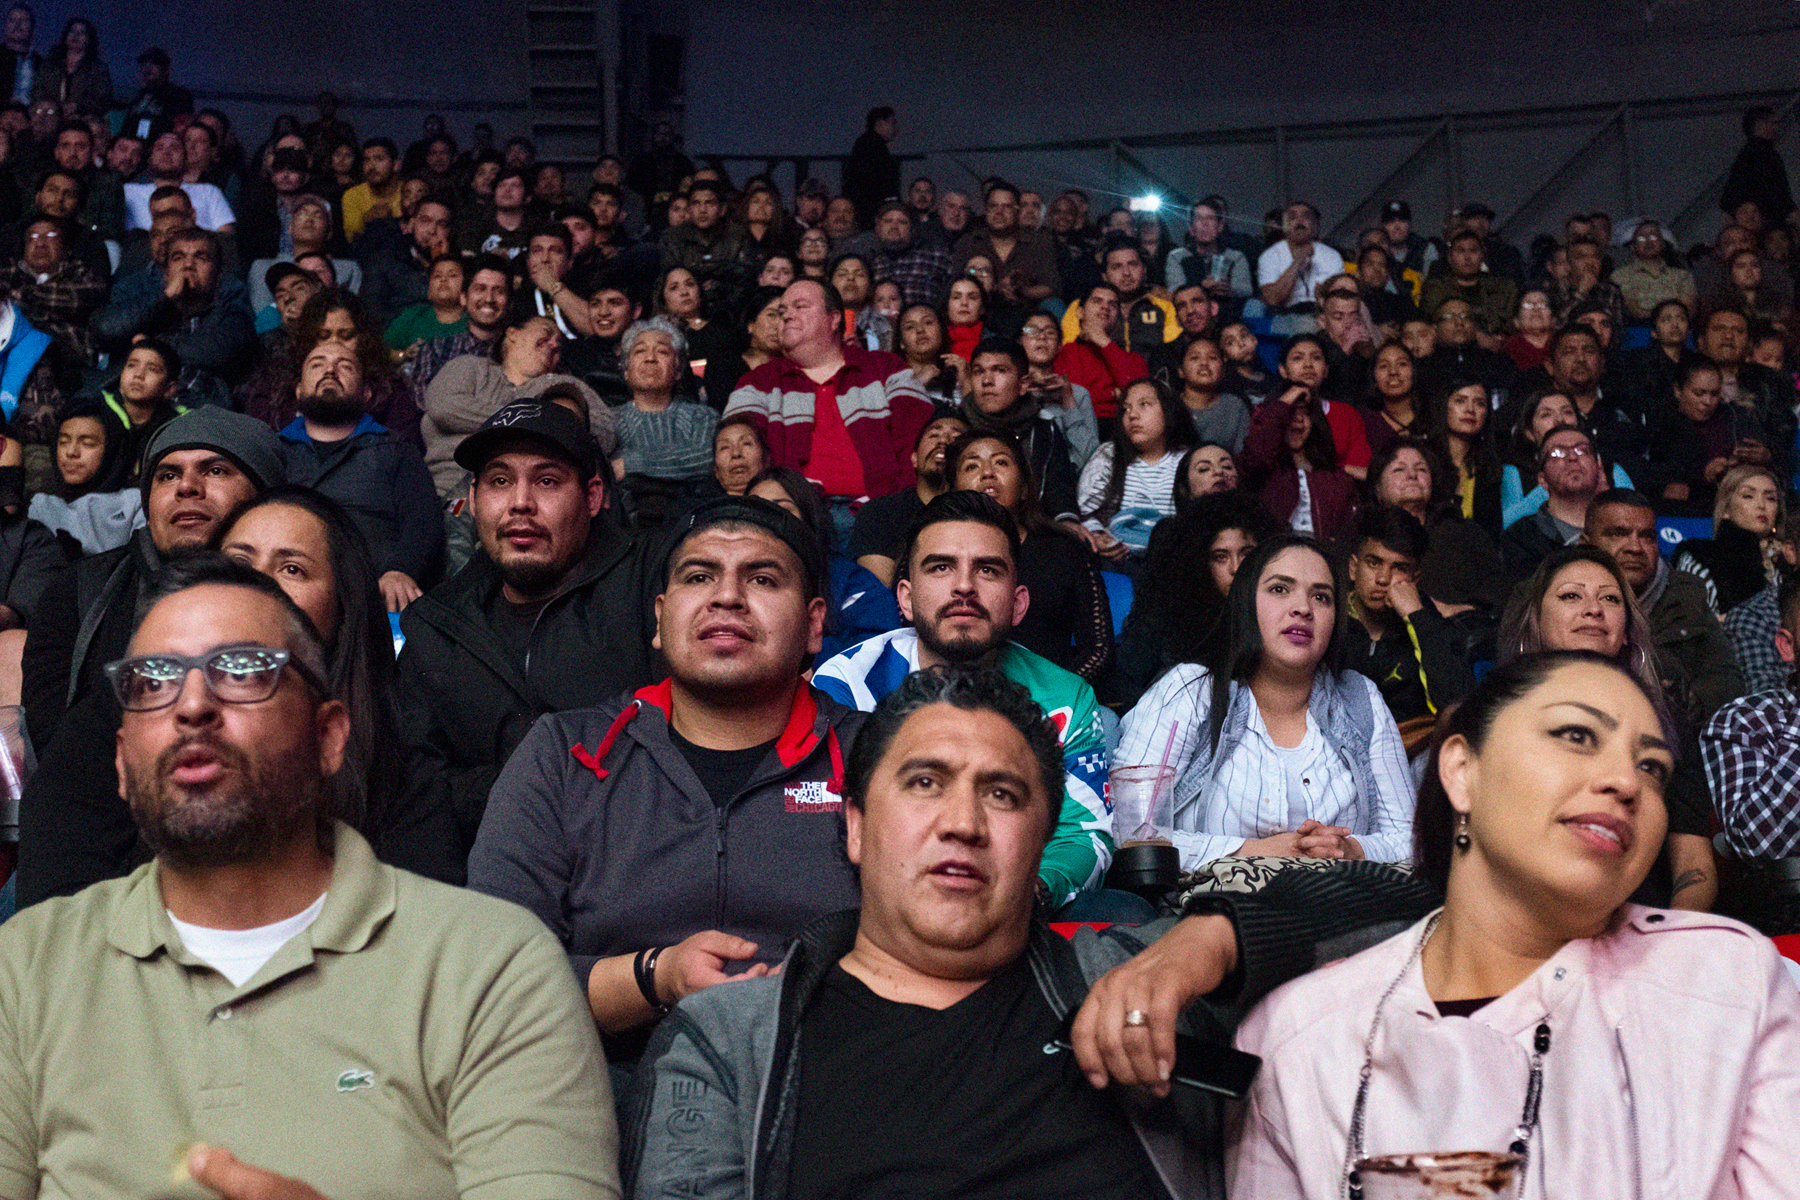 February 23, 2019 - Tijuana, BC, Mexico: The boxing fans at Auditorio Municipal Fausto Gutierrez Moreno. (Mallika Vora)